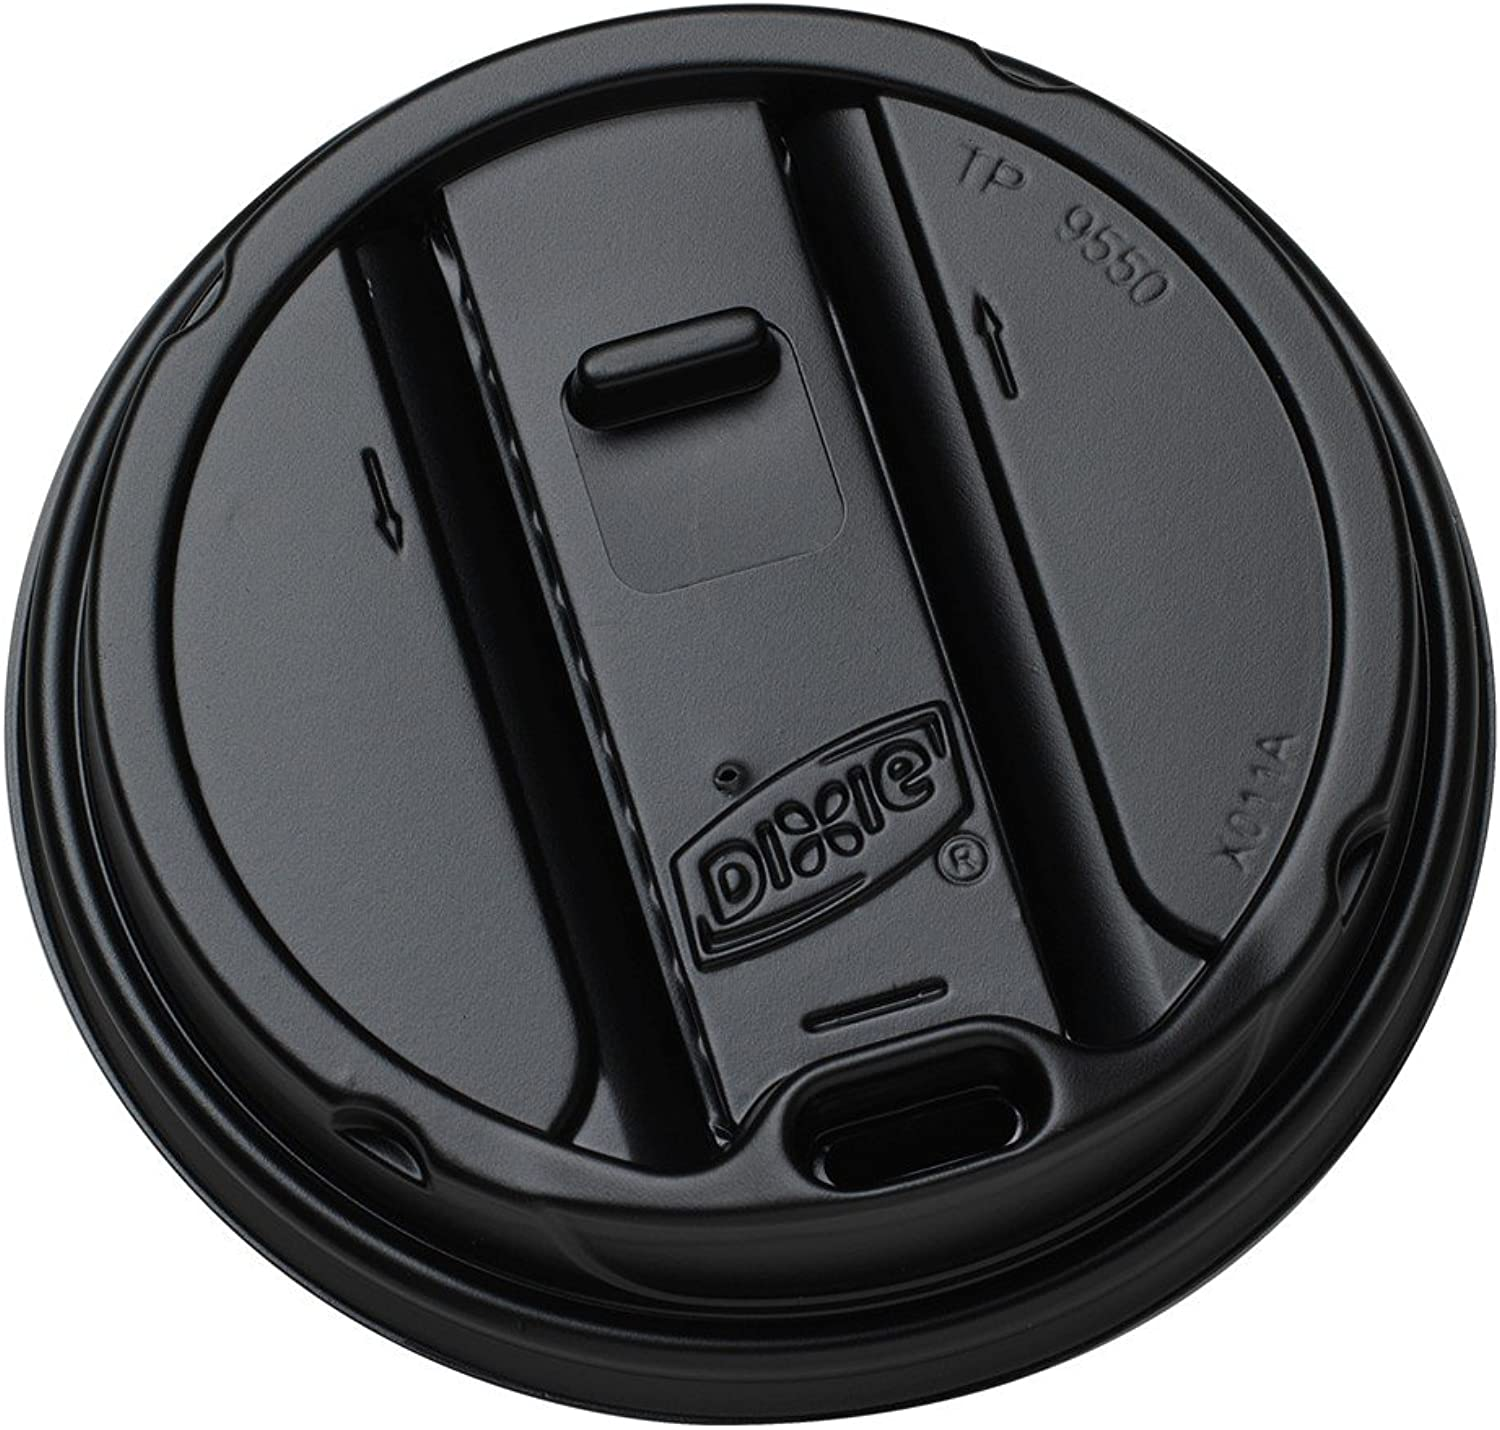 Dixie 20 and 24 oz. Reclosable Plastic Hot Cup Lid by GP PRO (Georgia-Pacific), Black, TP9550B, 1,000 Count (100 Lids Per Sleeve, 10 Sleeves Per Case)